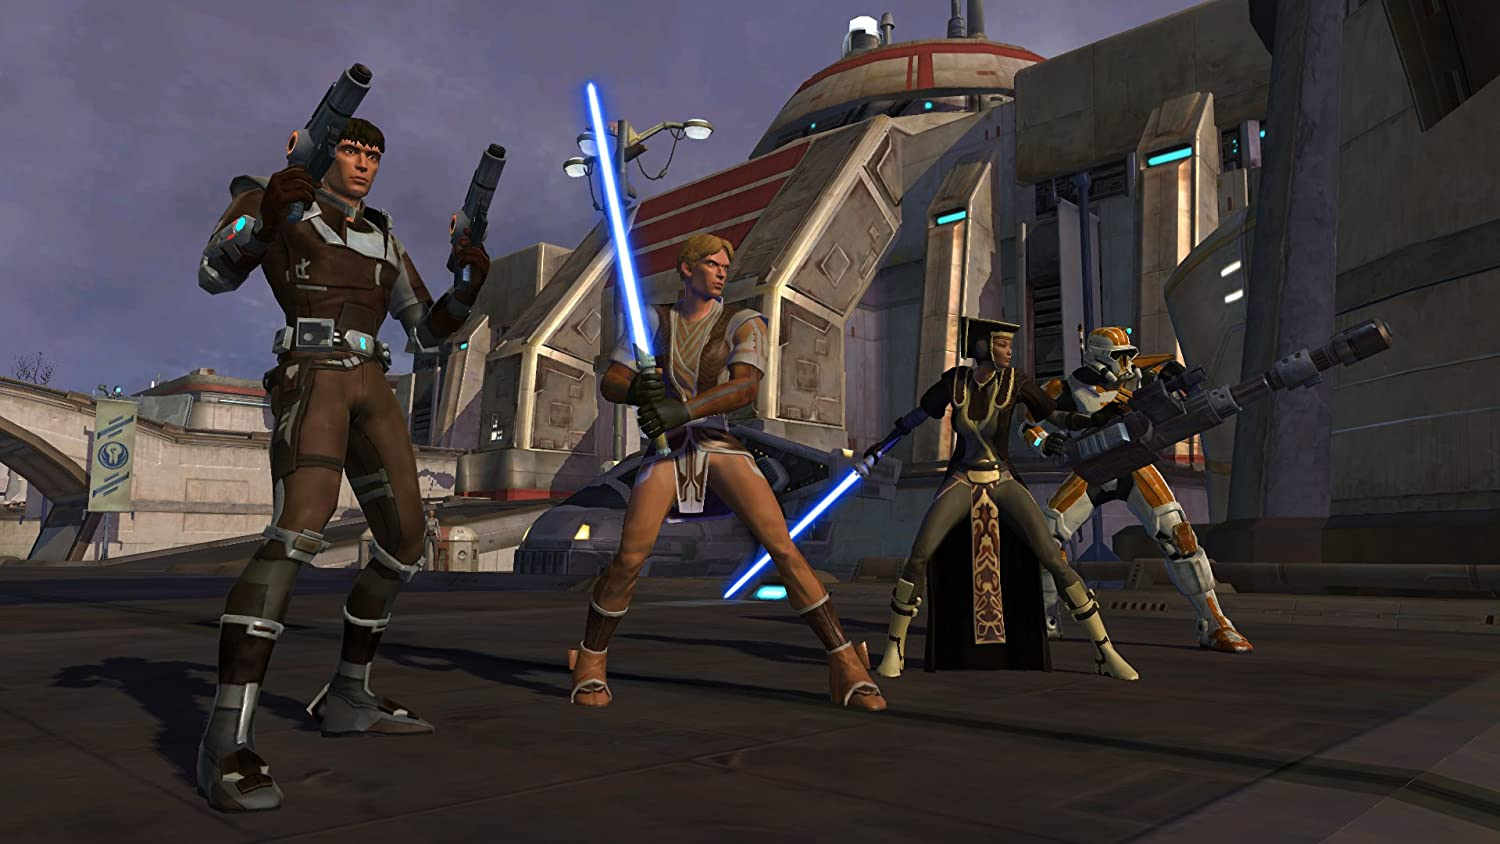 Amazon star wars the old republic 90 day prepaid amazon star wars the old republic 90 day prepaid subscription game time card online game code video games fandeluxe Image collections